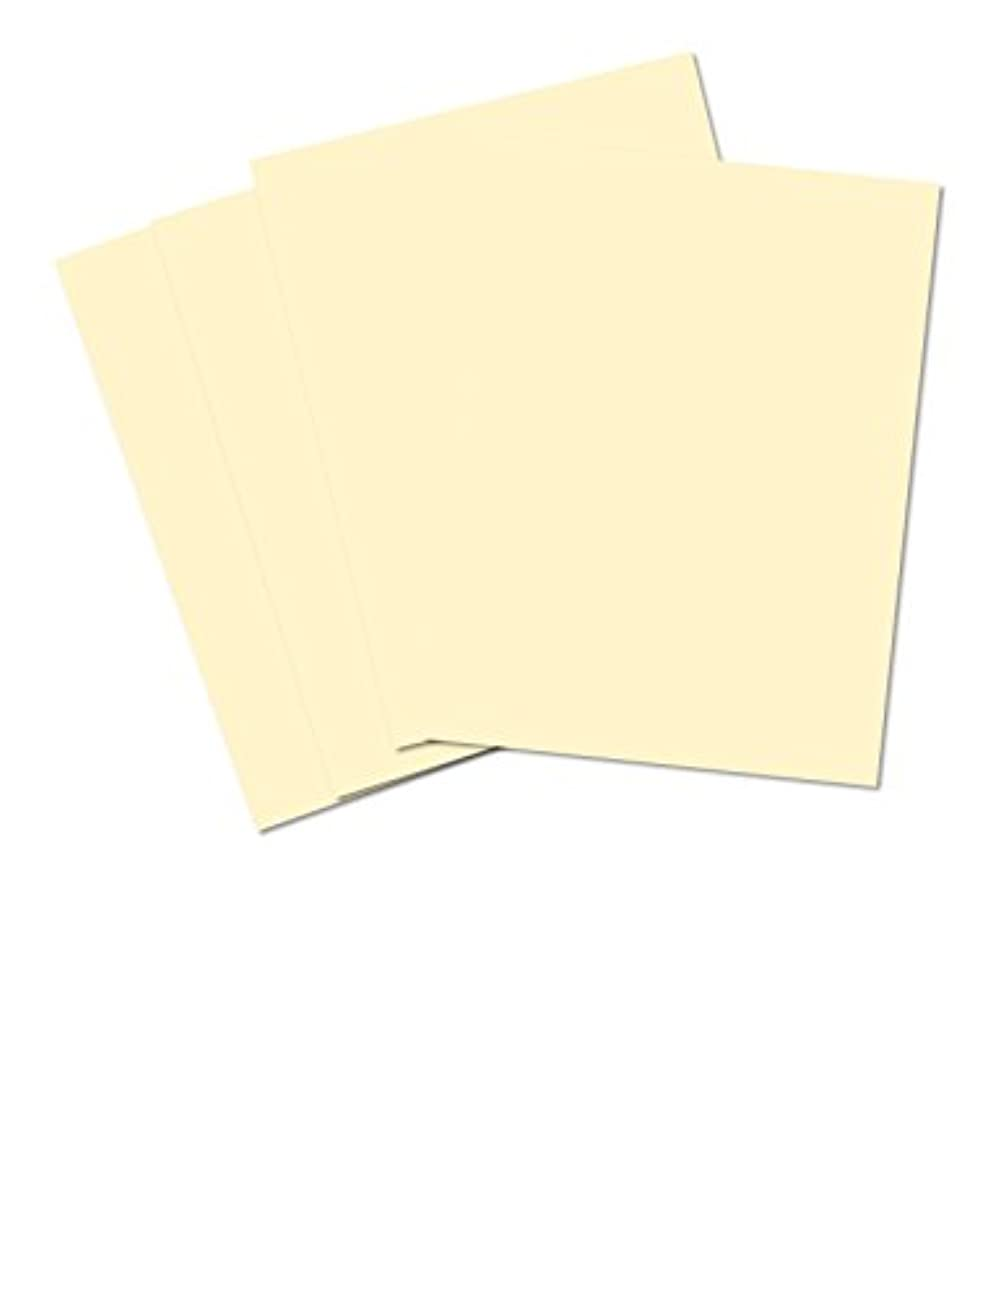 HCP A4 210 x 297 mm 80 GSM Smooth Calendared Paper - Cream (Pack of 100 Sheets)